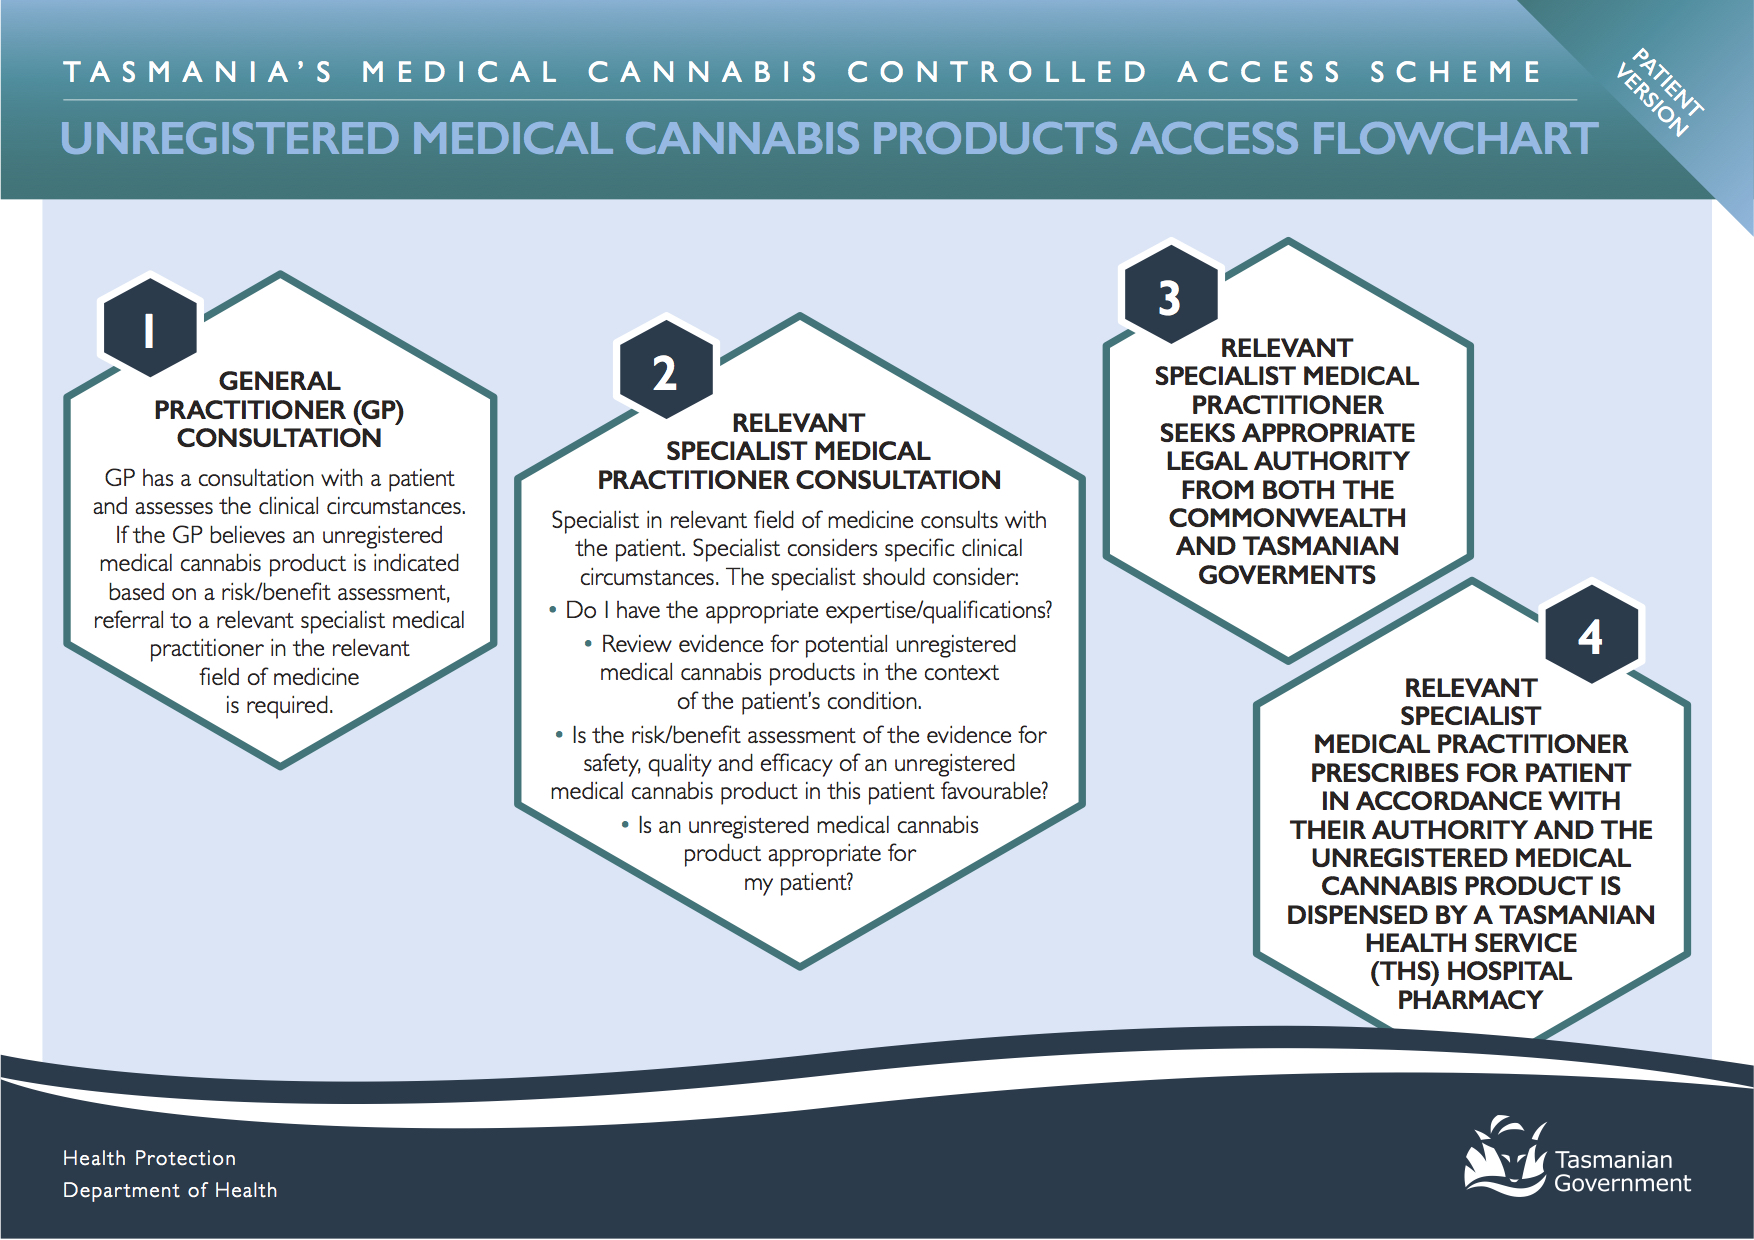 Medical_Cannabis_-_Controlled_Access_Scheme_-_Flow_Charts_-_For_Patients